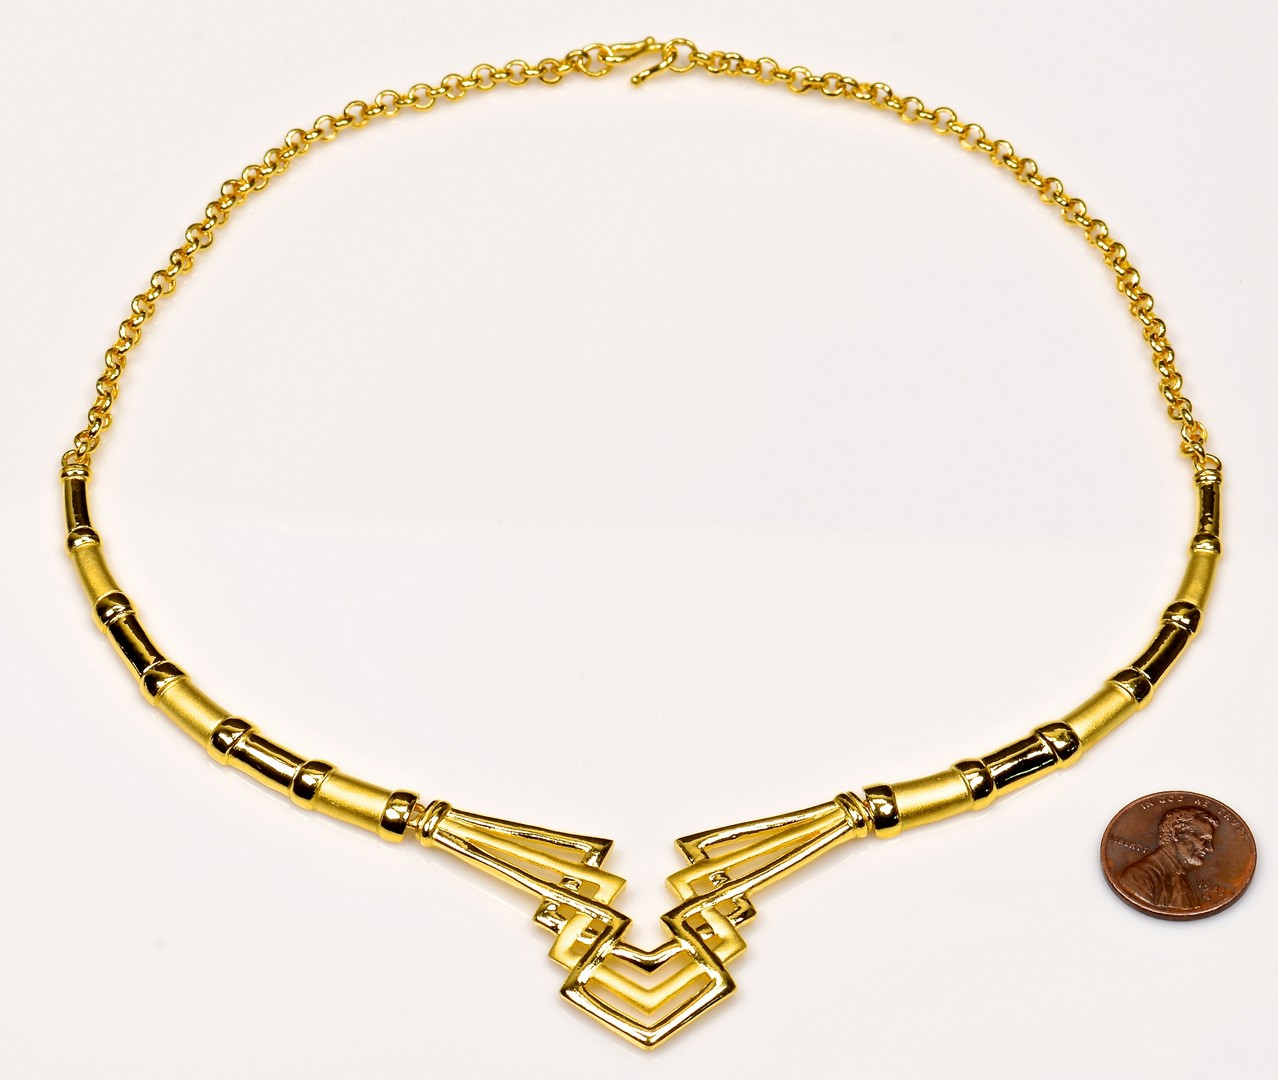 Lot 74: Chinese Modern 24K Gold Necklace